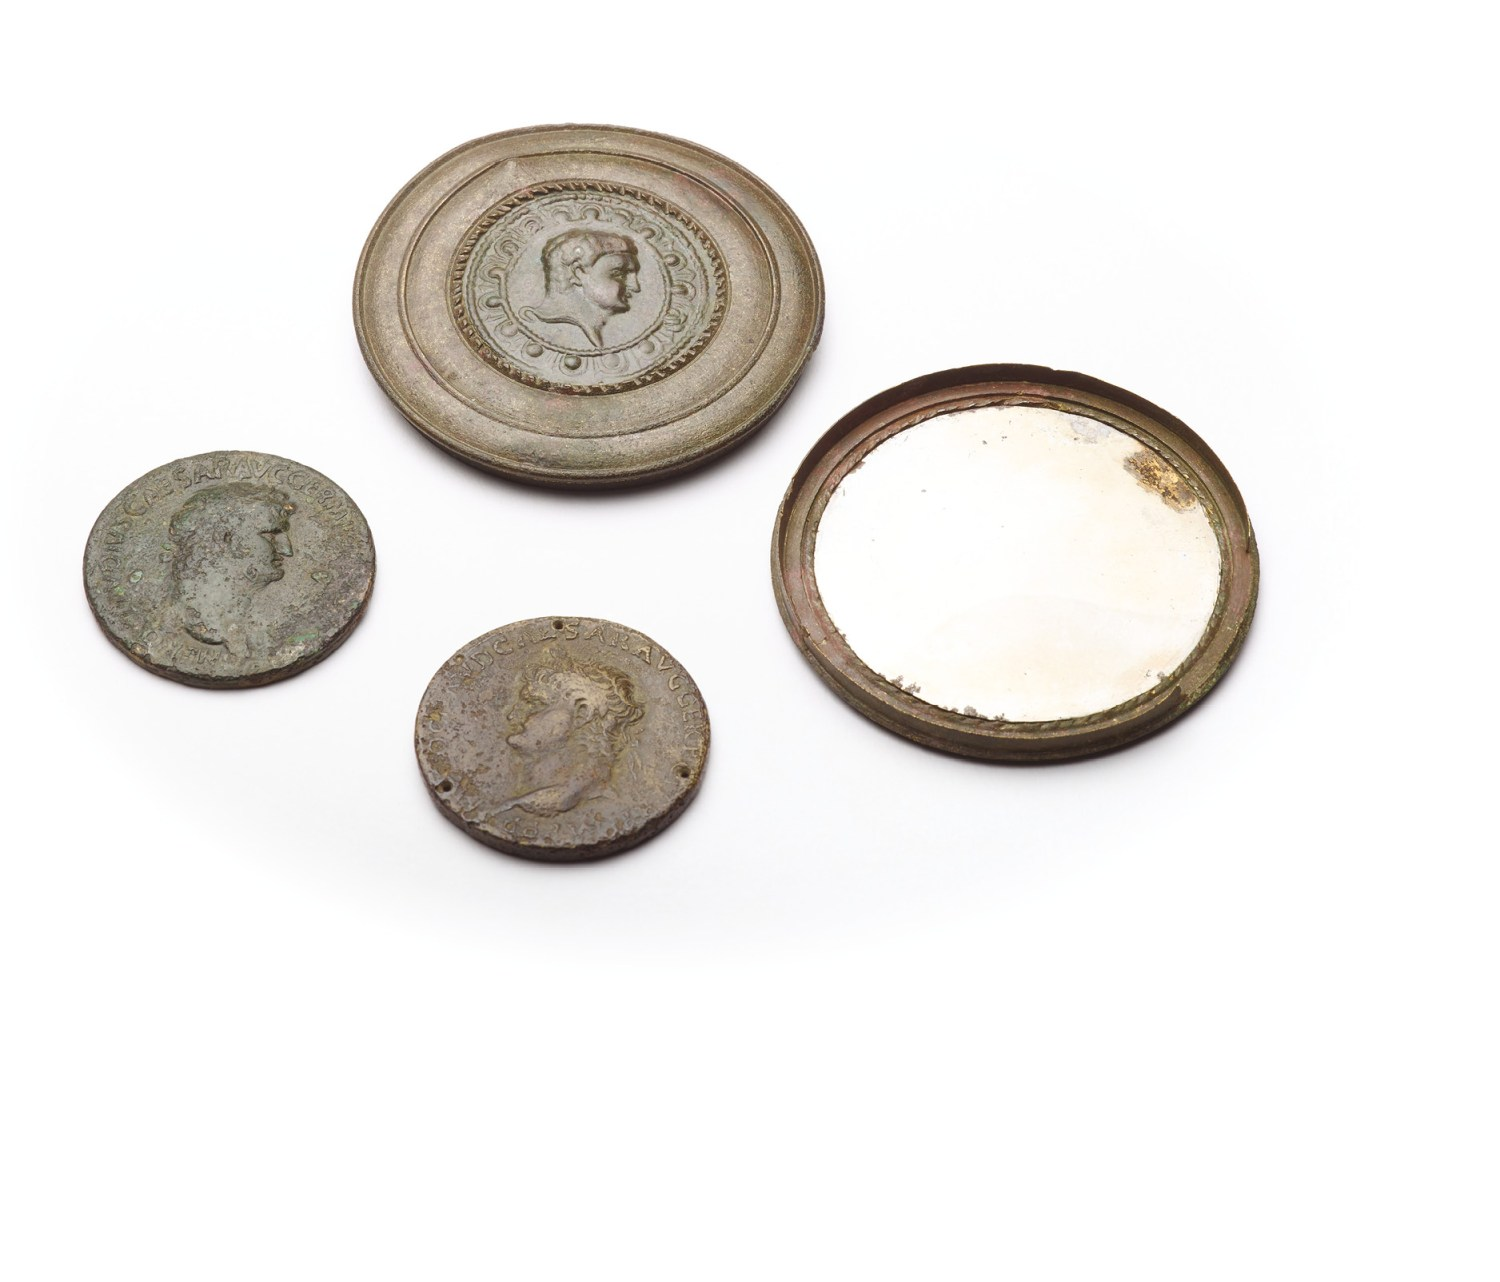 left These are mirror cases decorated with coins bearing Nero's portrait. Found near Paris in France and Coddenham in Suffolk, they are thought to represent supporters of the emperor unlike public displays of loyalty, which may have been driven by political expediency or self-interest, the incorporation of Nero's image into a personal object like this might hint at more genuine admiration.